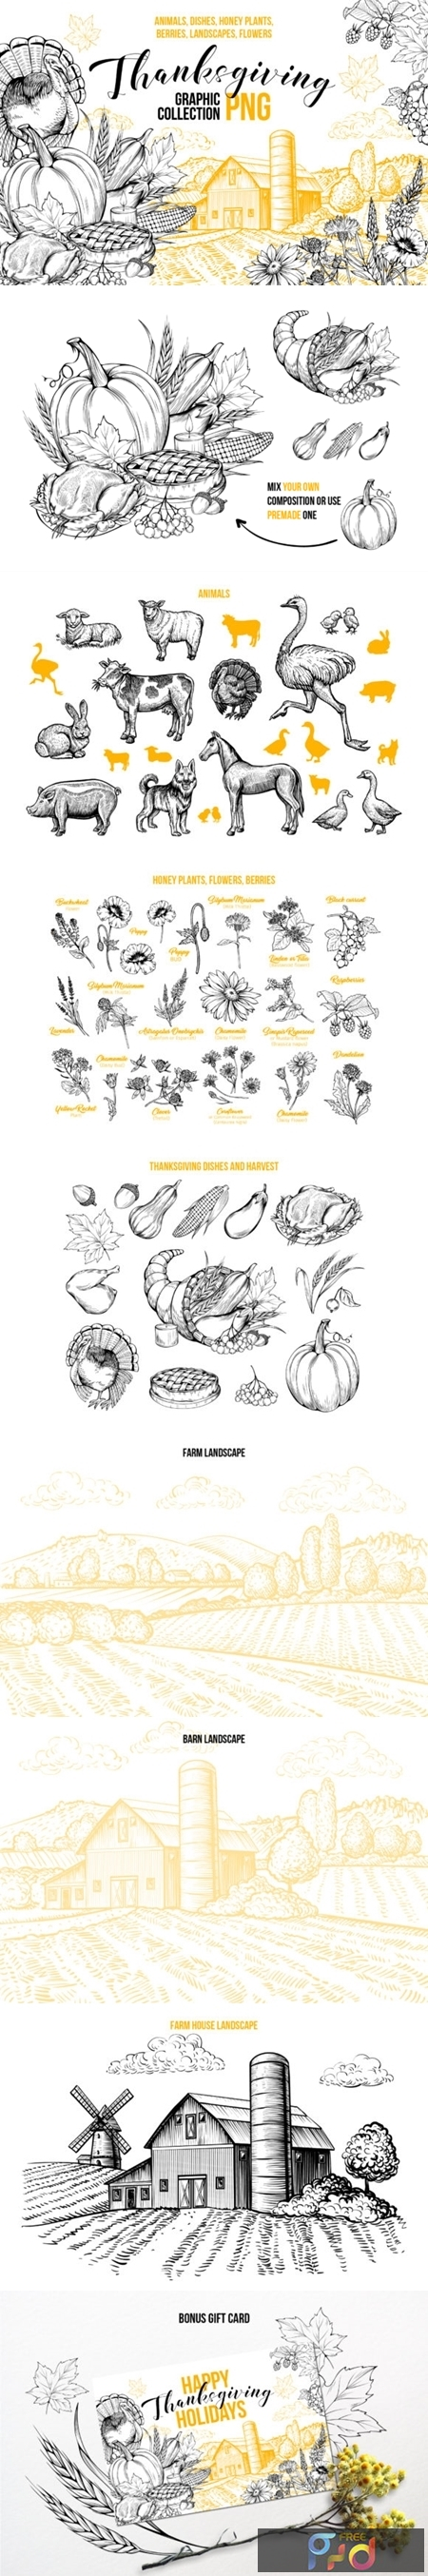 Thanksgiving Graphics Collection 1738200 1